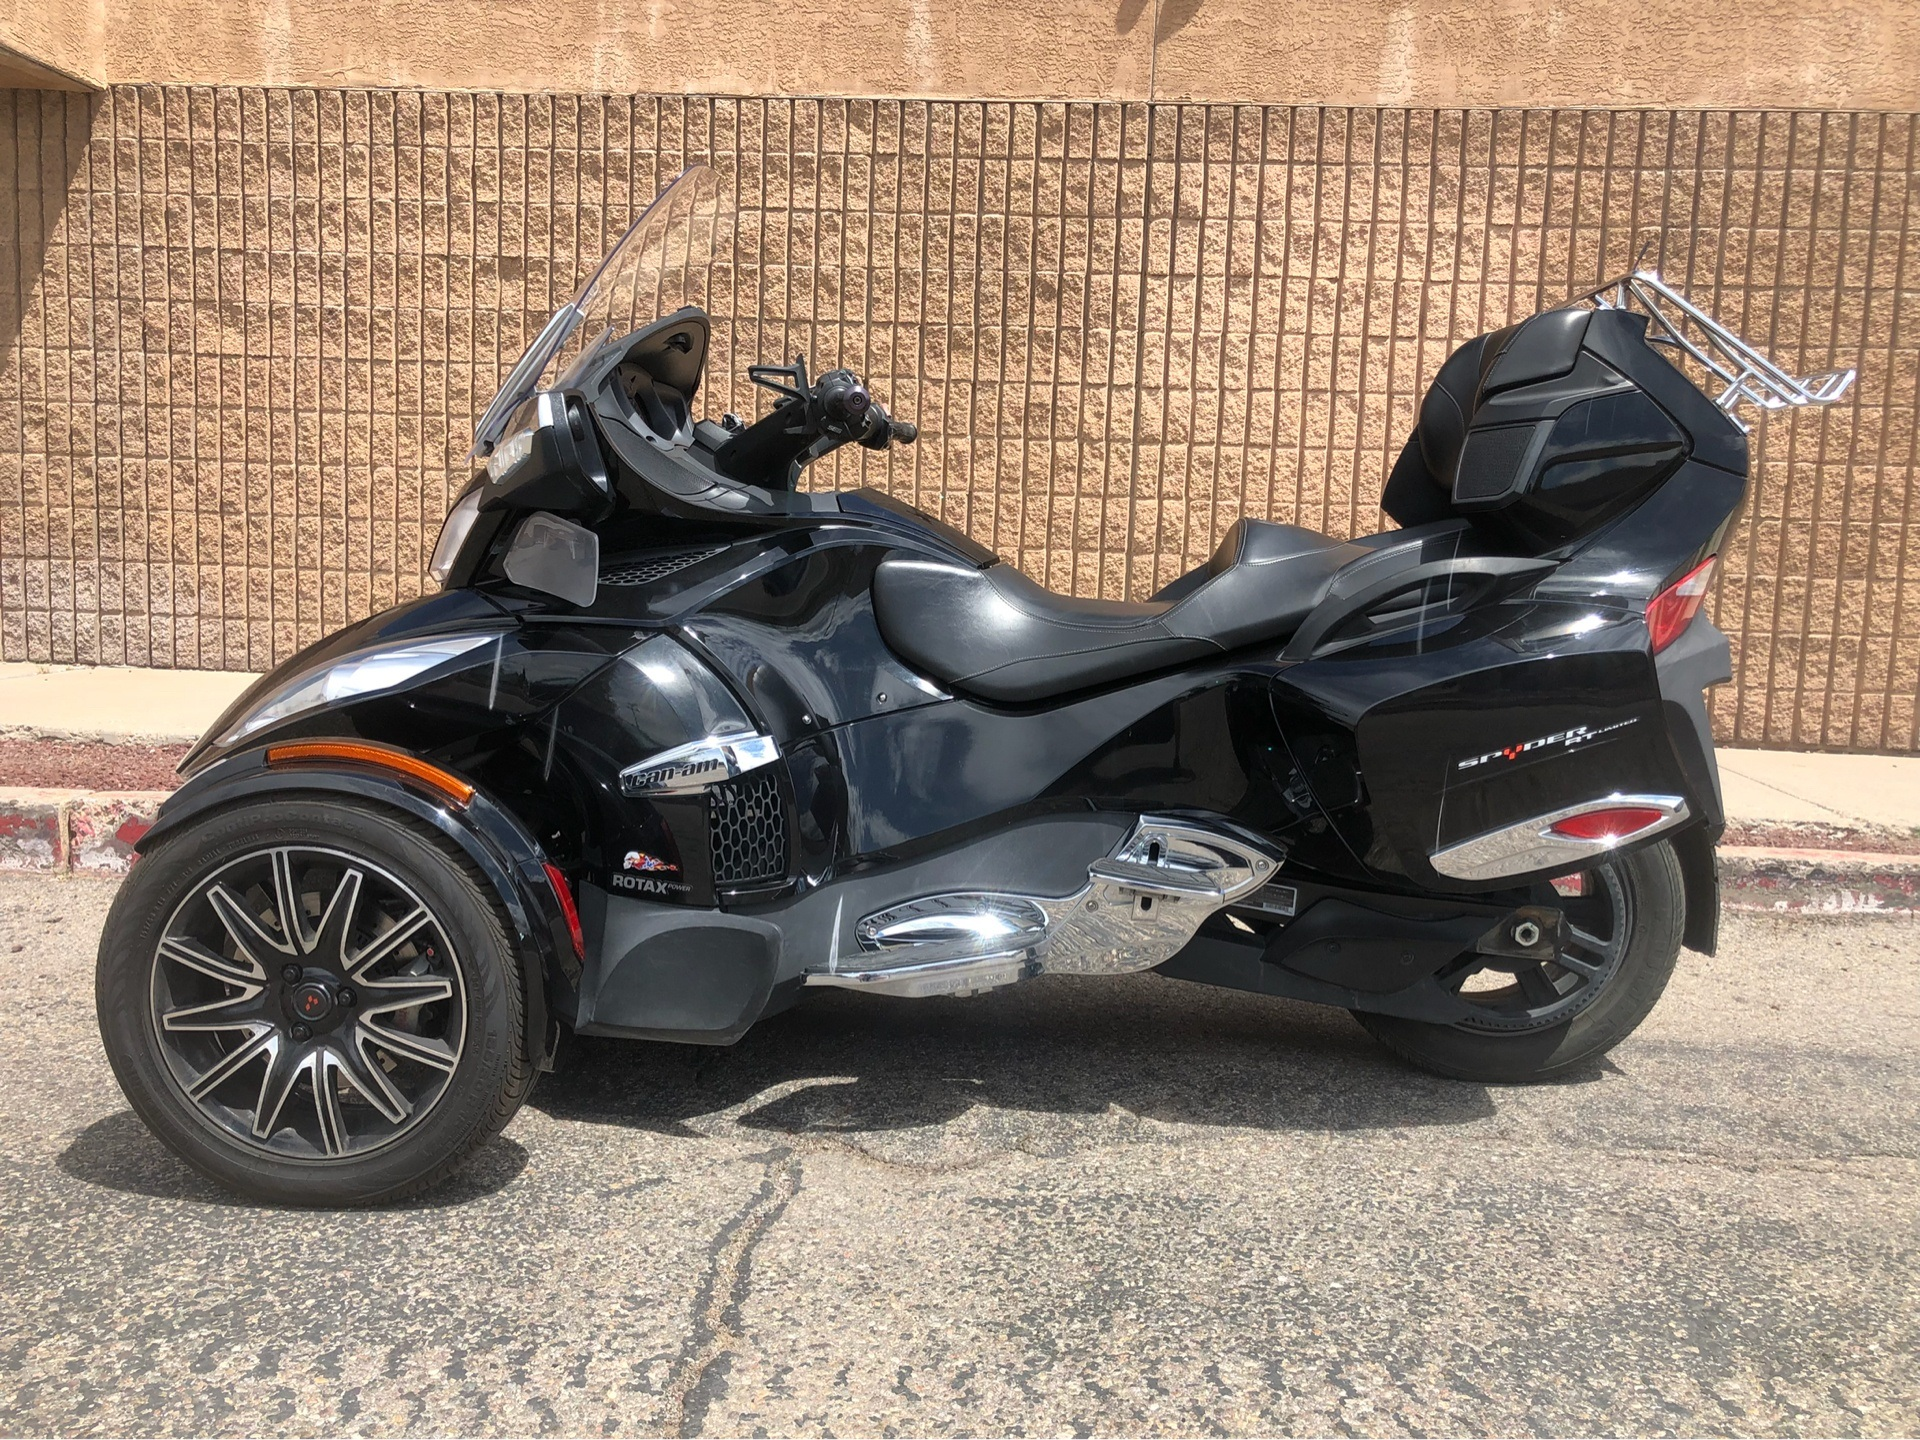 2015 Can-Am Spyder® RT Limited in Albuquerque, New Mexico - Photo 3